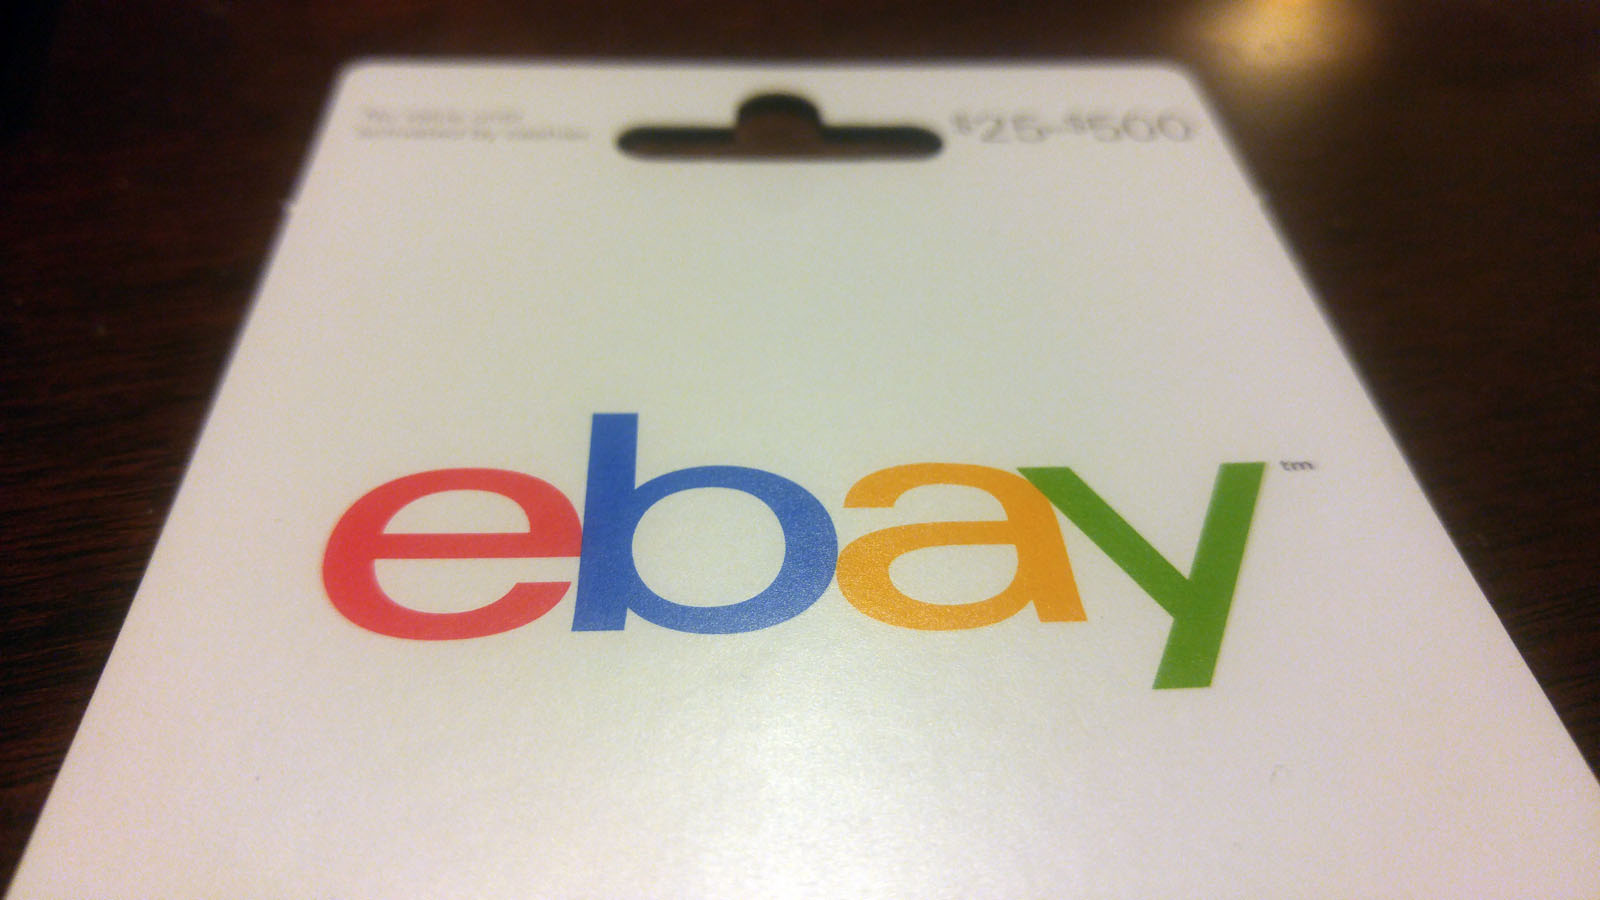 Laptoptravel Save Up To 27 Or More On Ebay Gift Cards Lower Your Travel Costs Quickly Easily